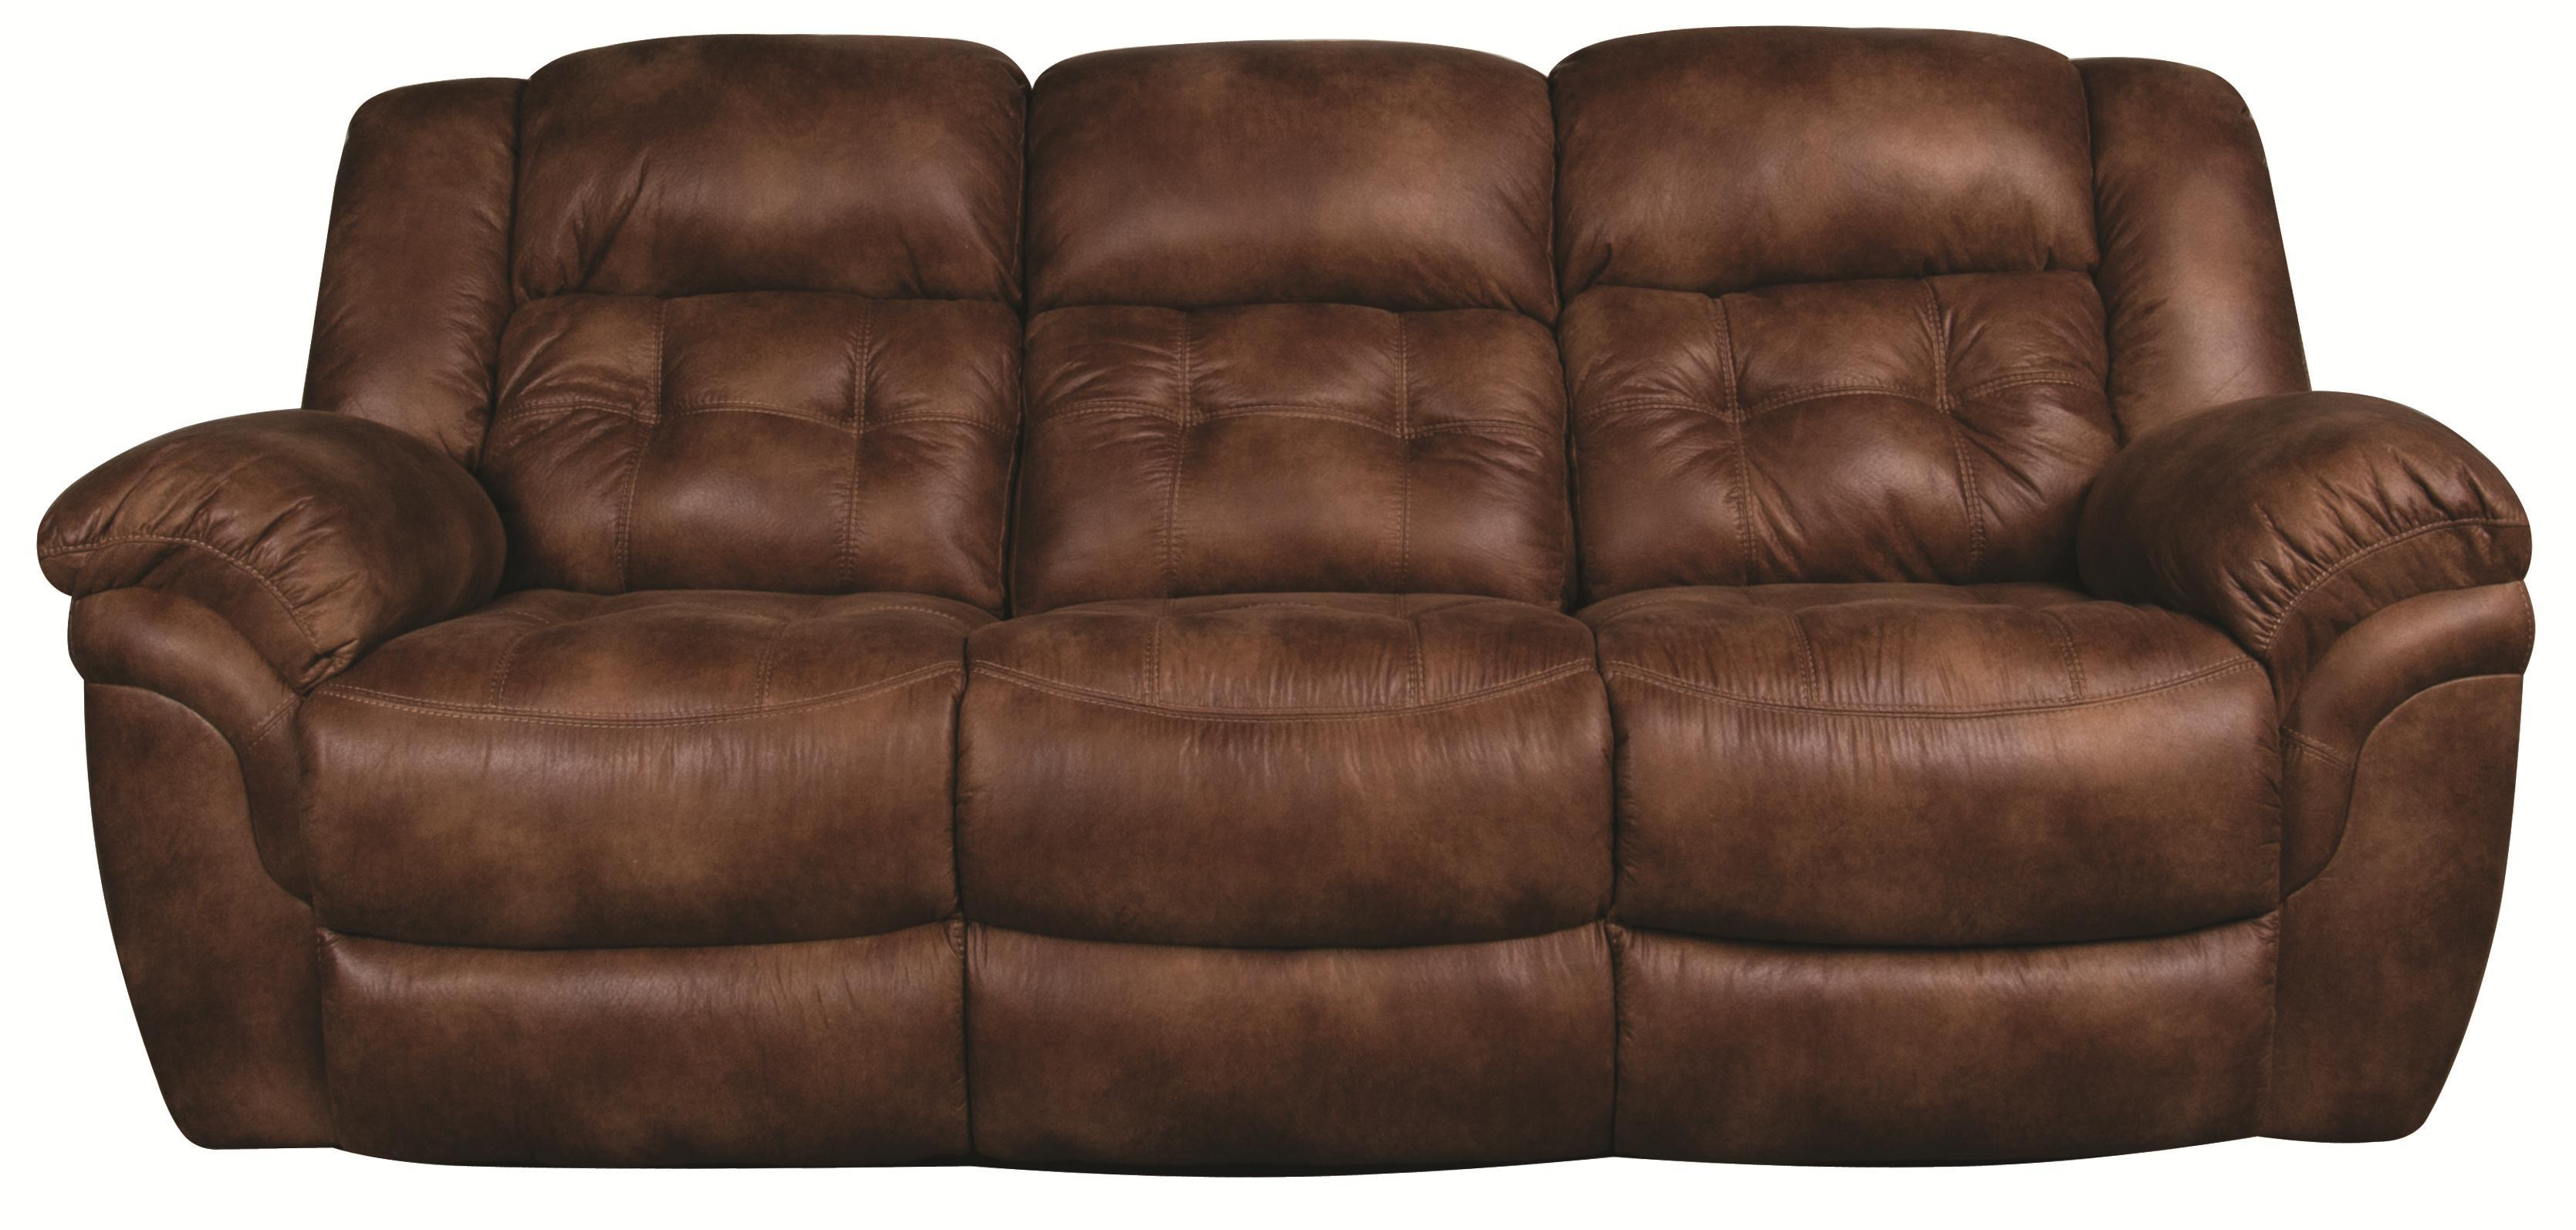 Morris Home Furnishings Elijah Elijah Power Reclining Sofa - Item Number: 102855074